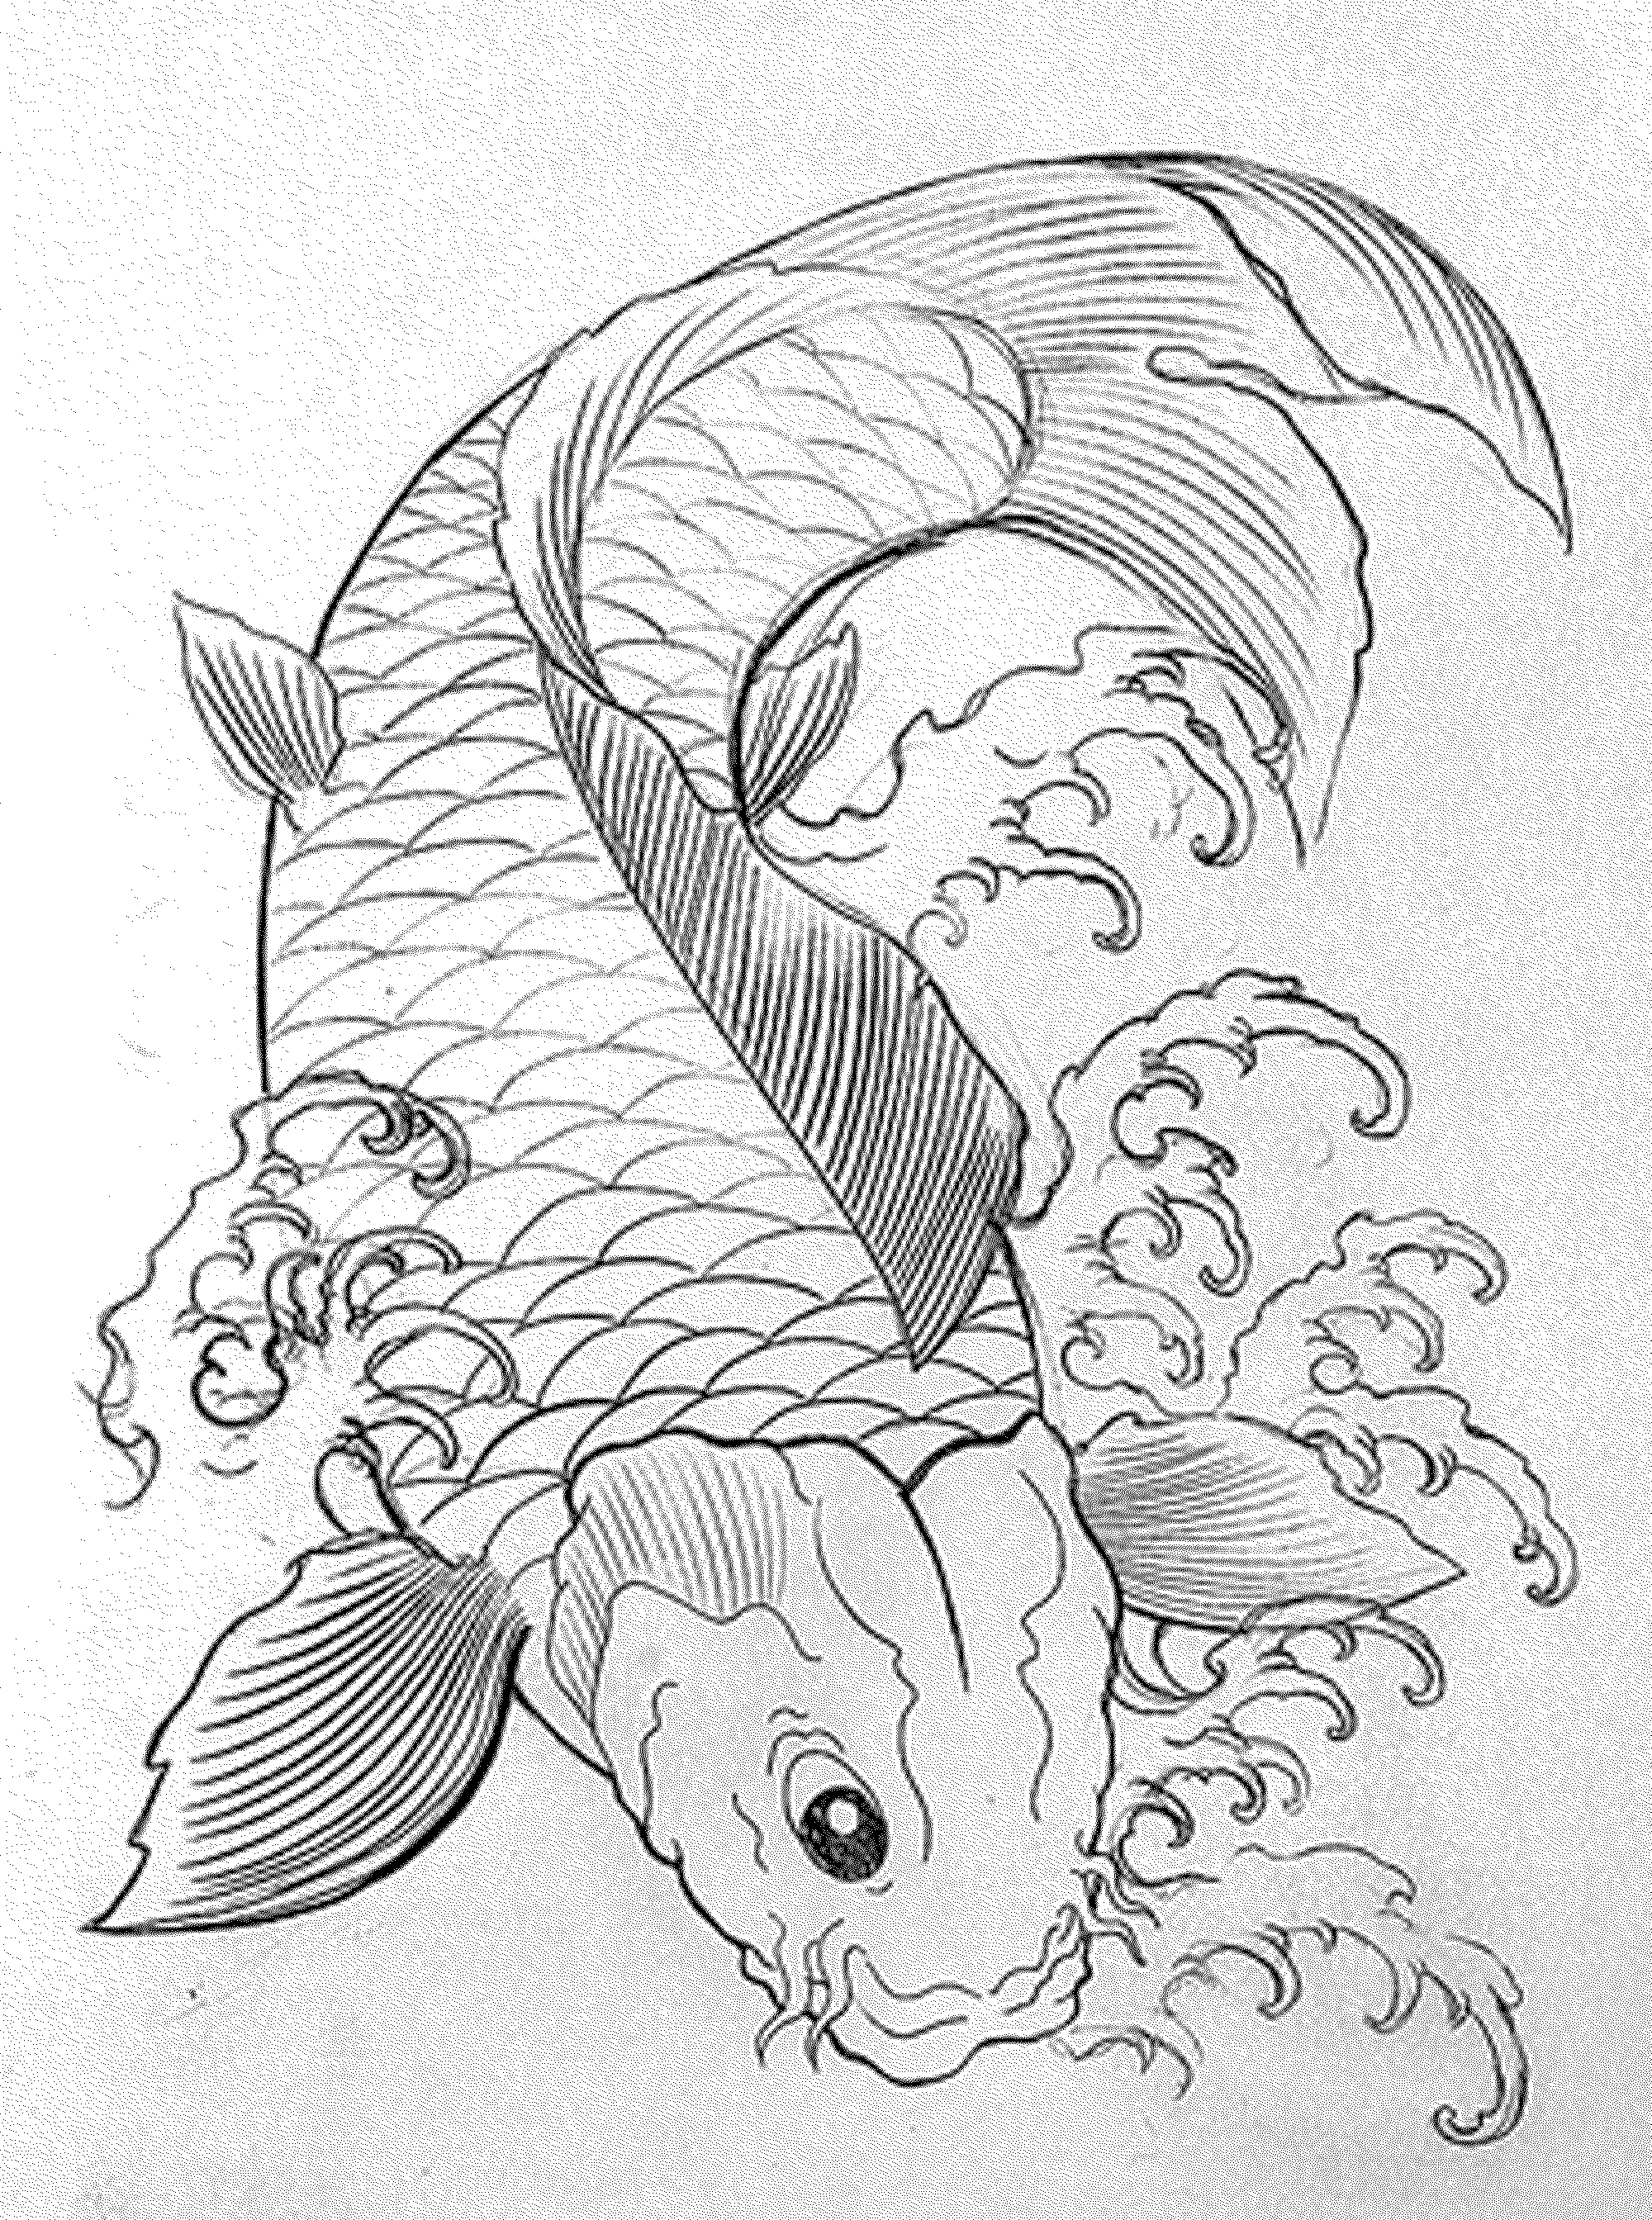 Tropical Fish Drawing at GetDrawings.com | Free for personal use ...